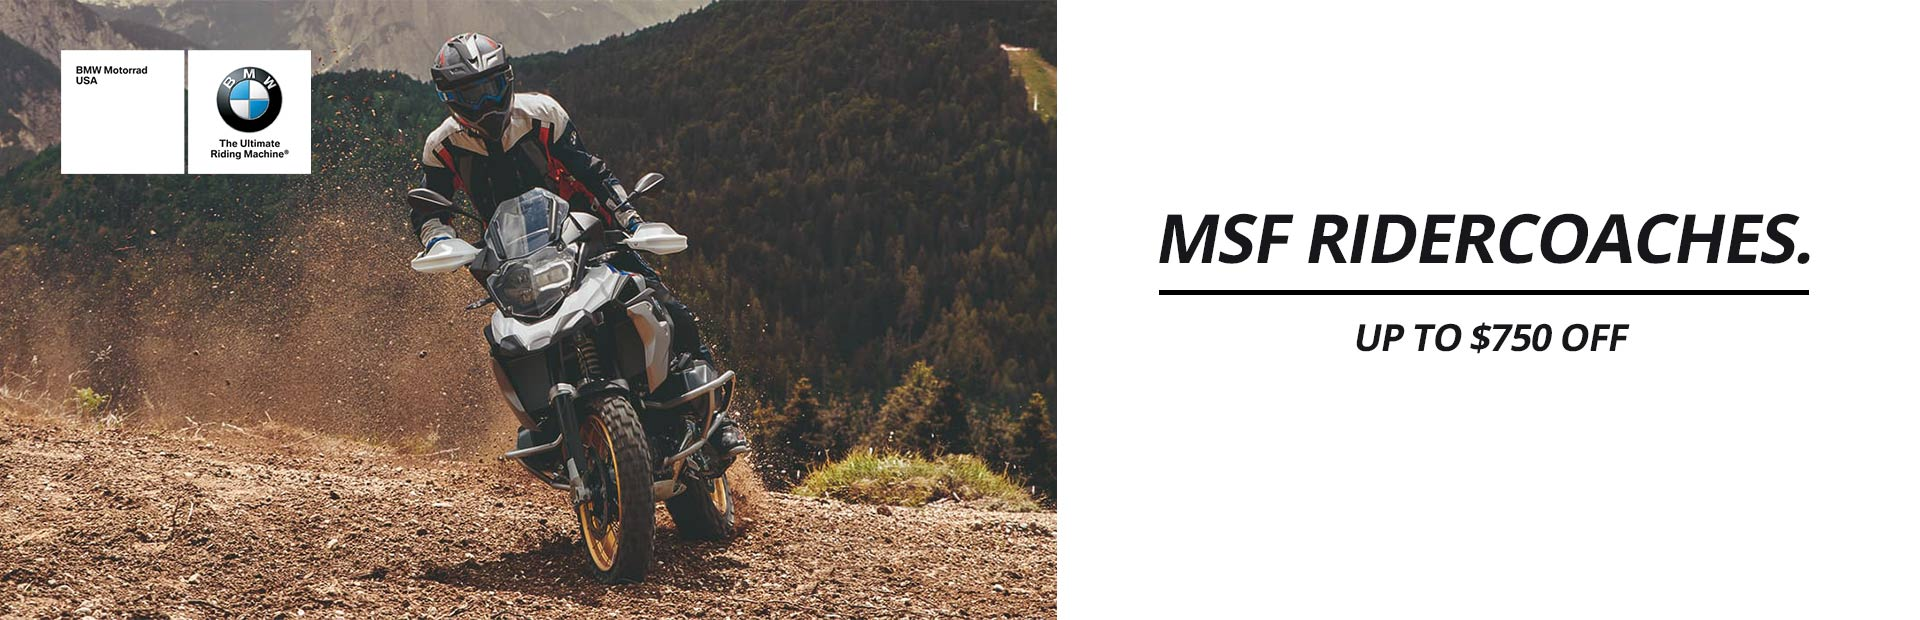 BMW:  MSF RiderCoaches Up To $750 Off